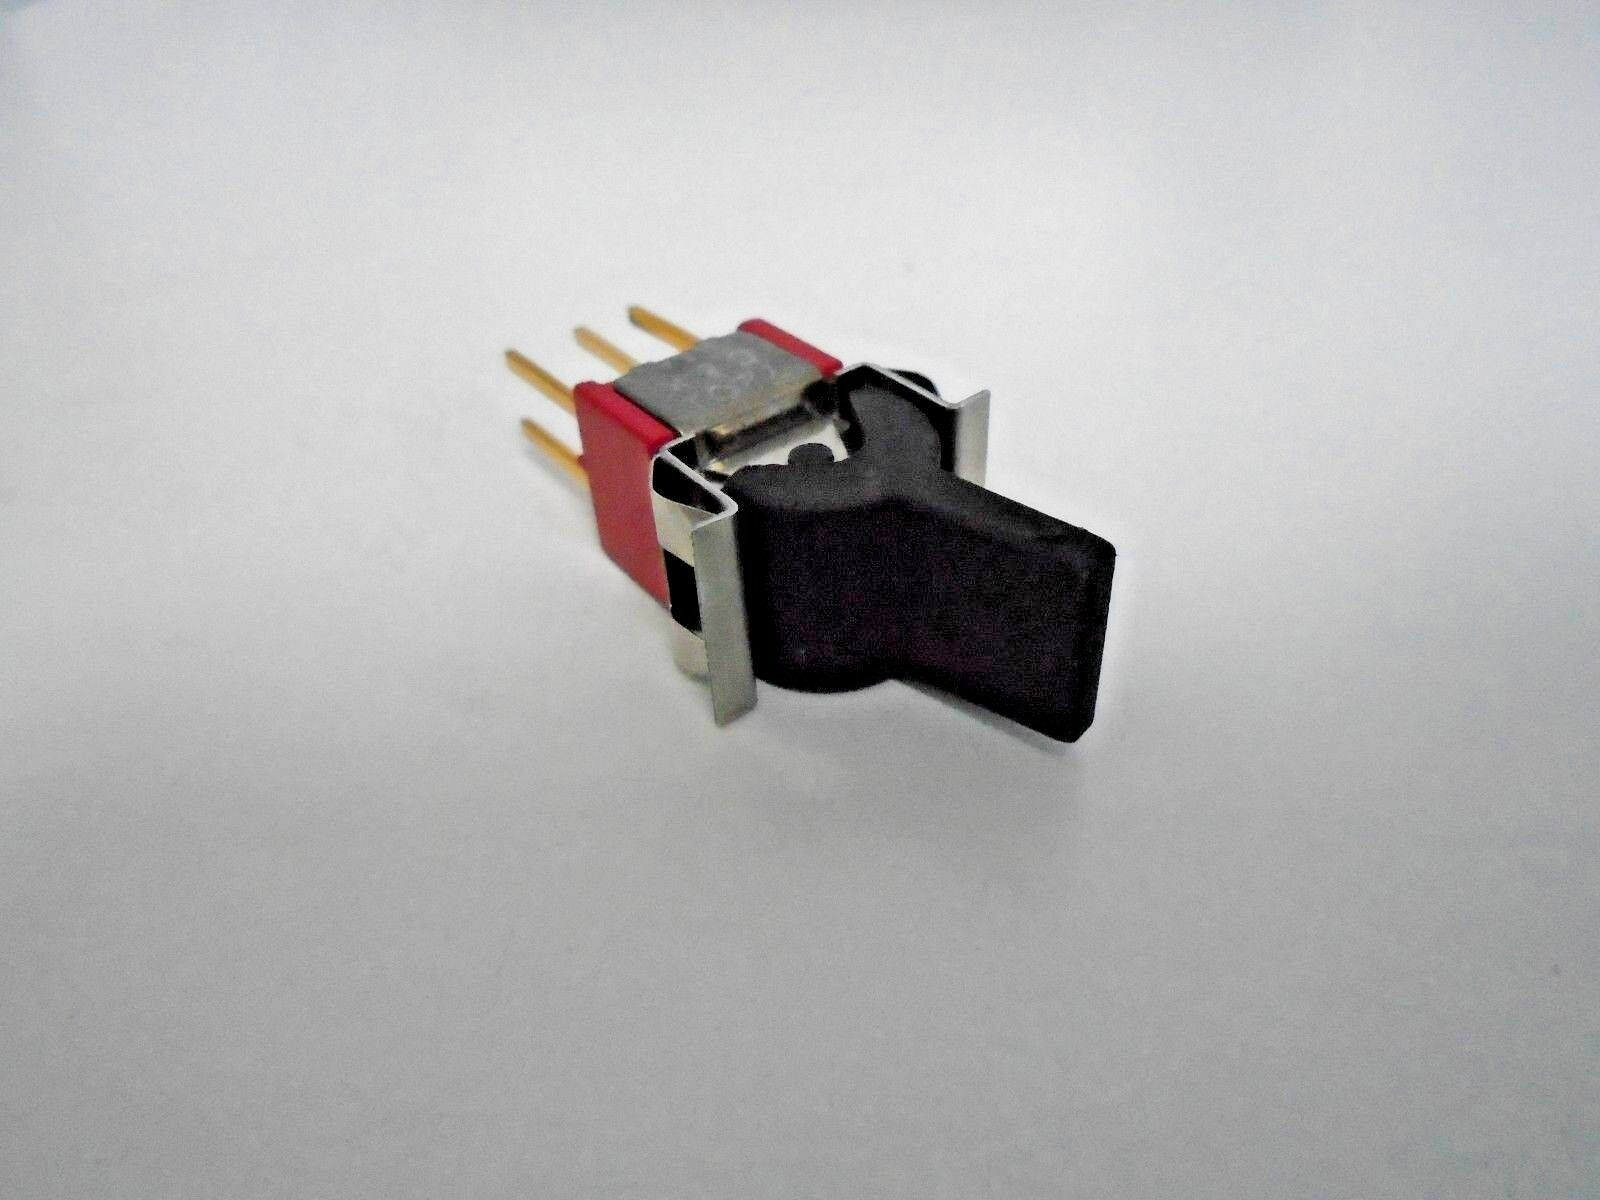 8x On Dpdt Mini Toggle Switch Ck 7201 Ebay Soldering Wire Buy Socket With Switchac Power Fuseac